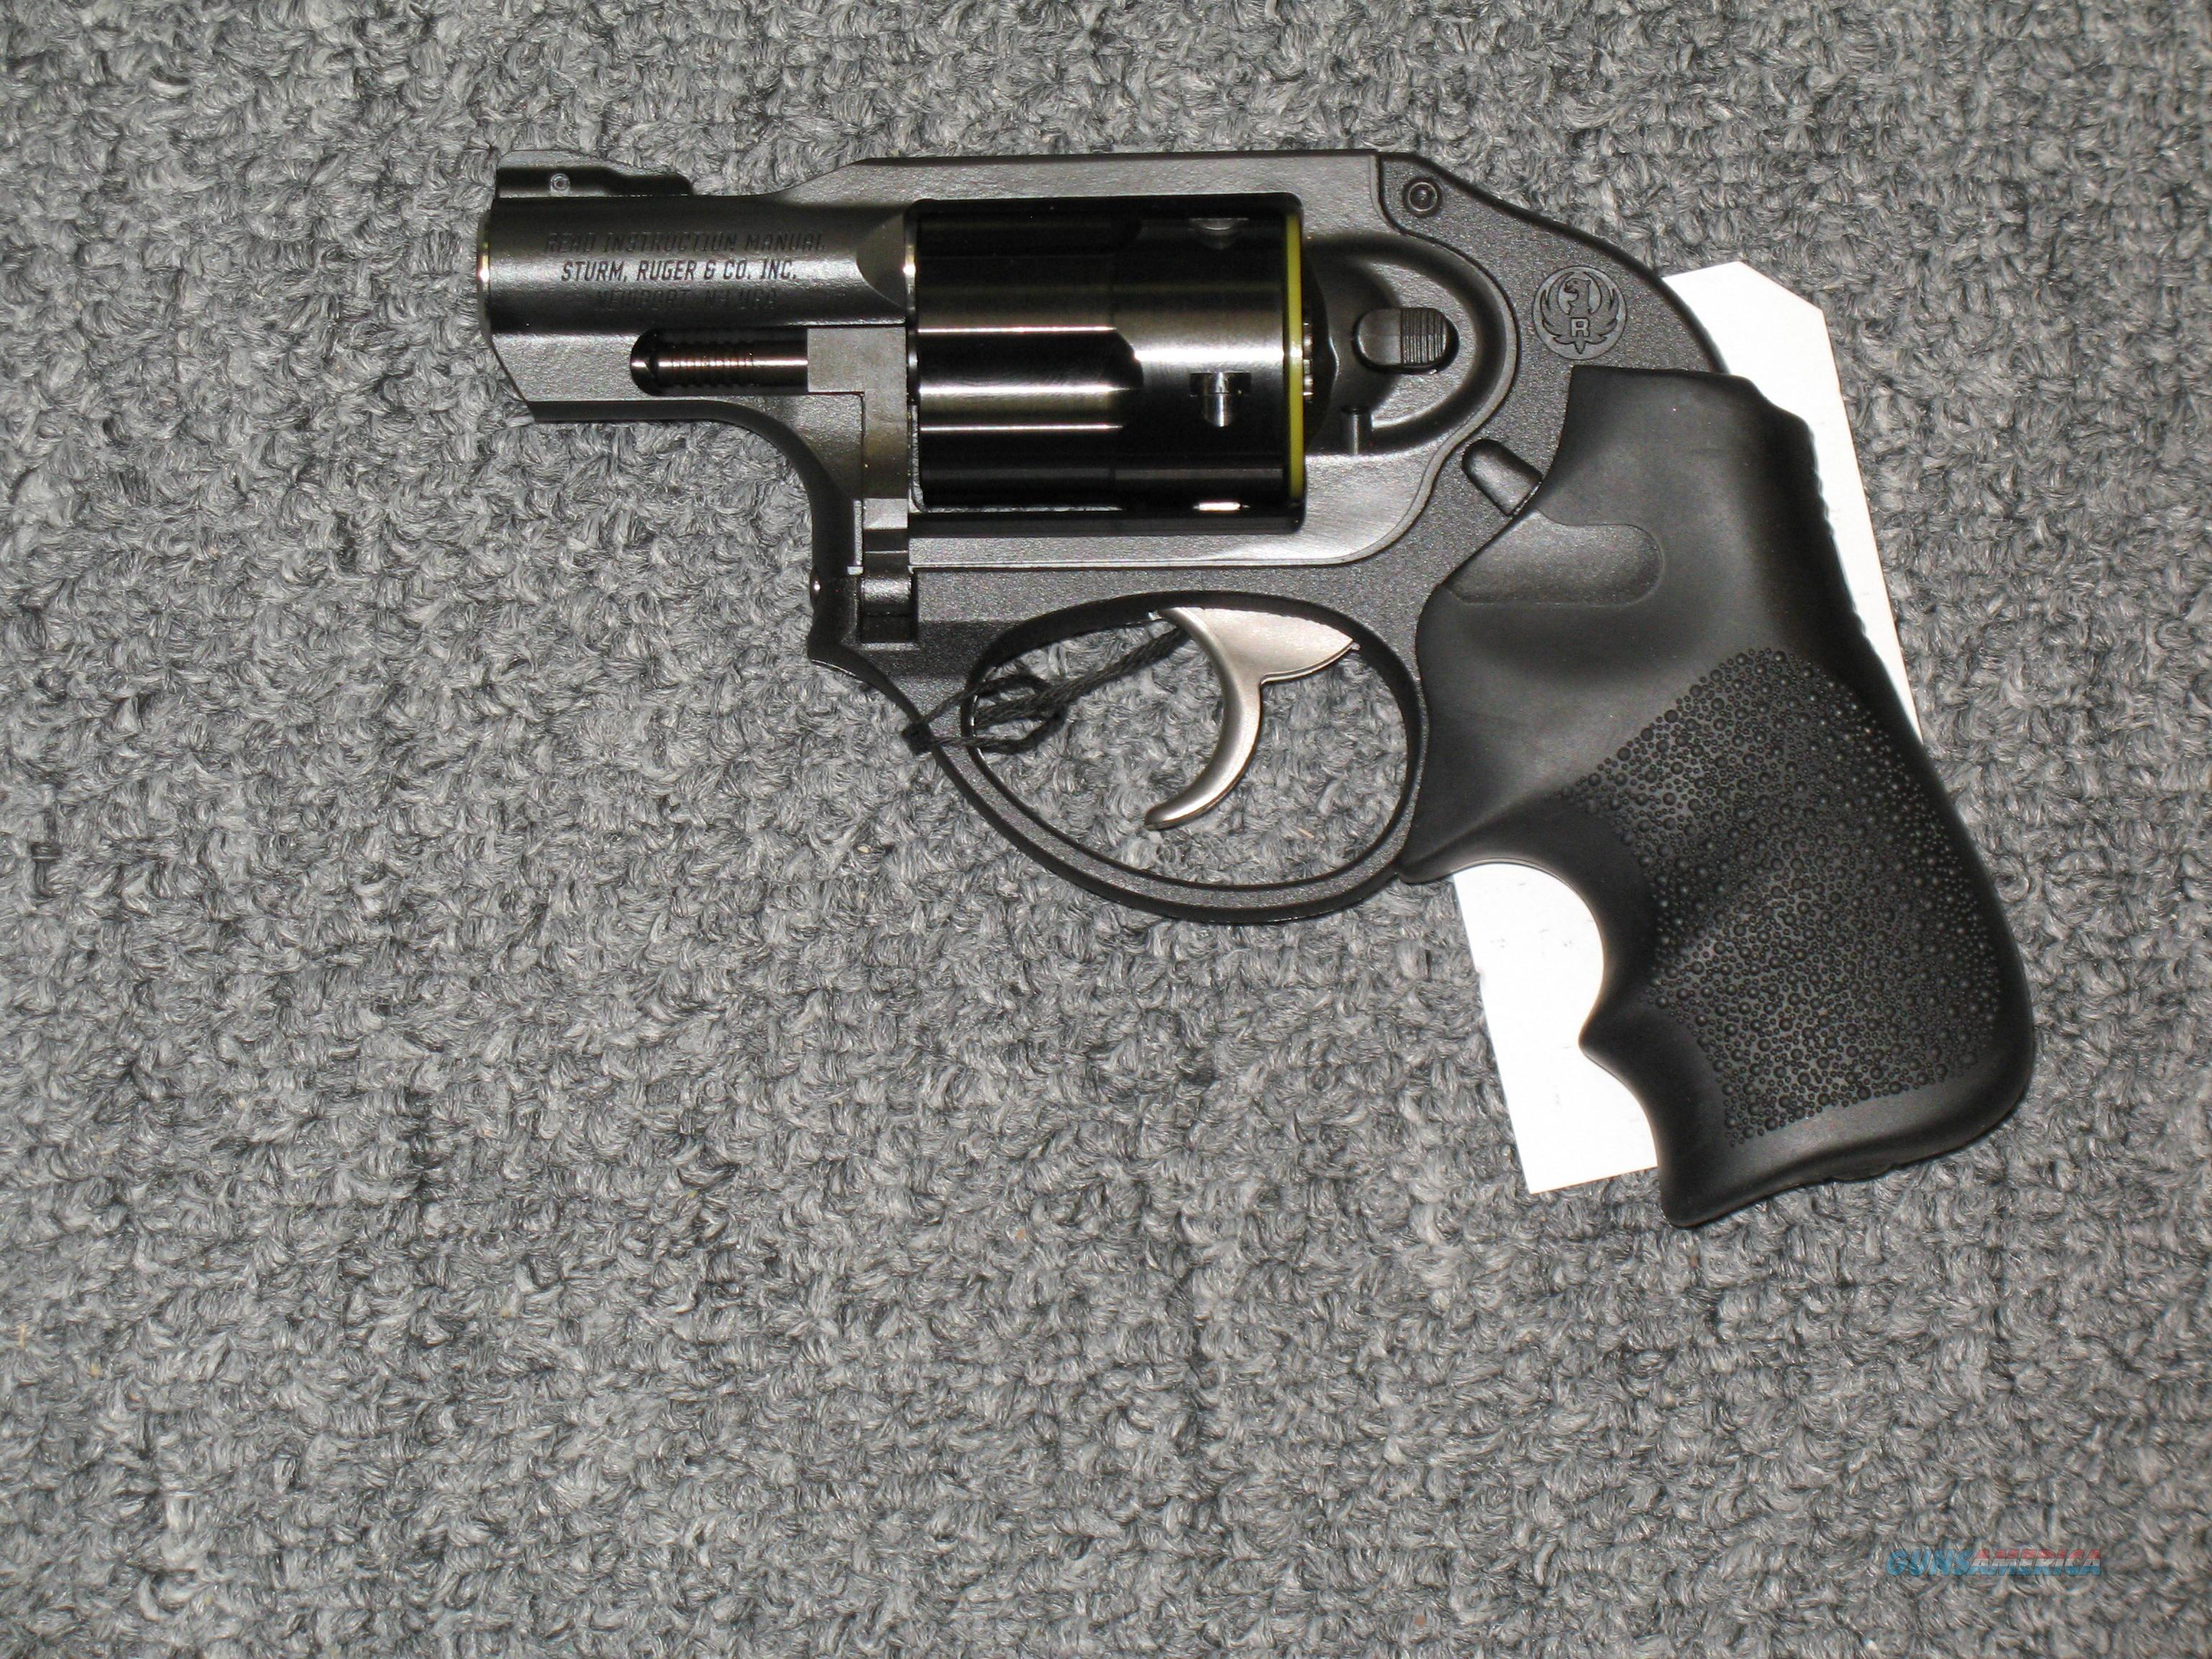 LCR 9mm with moon clips  Guns > Pistols > Ruger Double Action Revolver > LCR